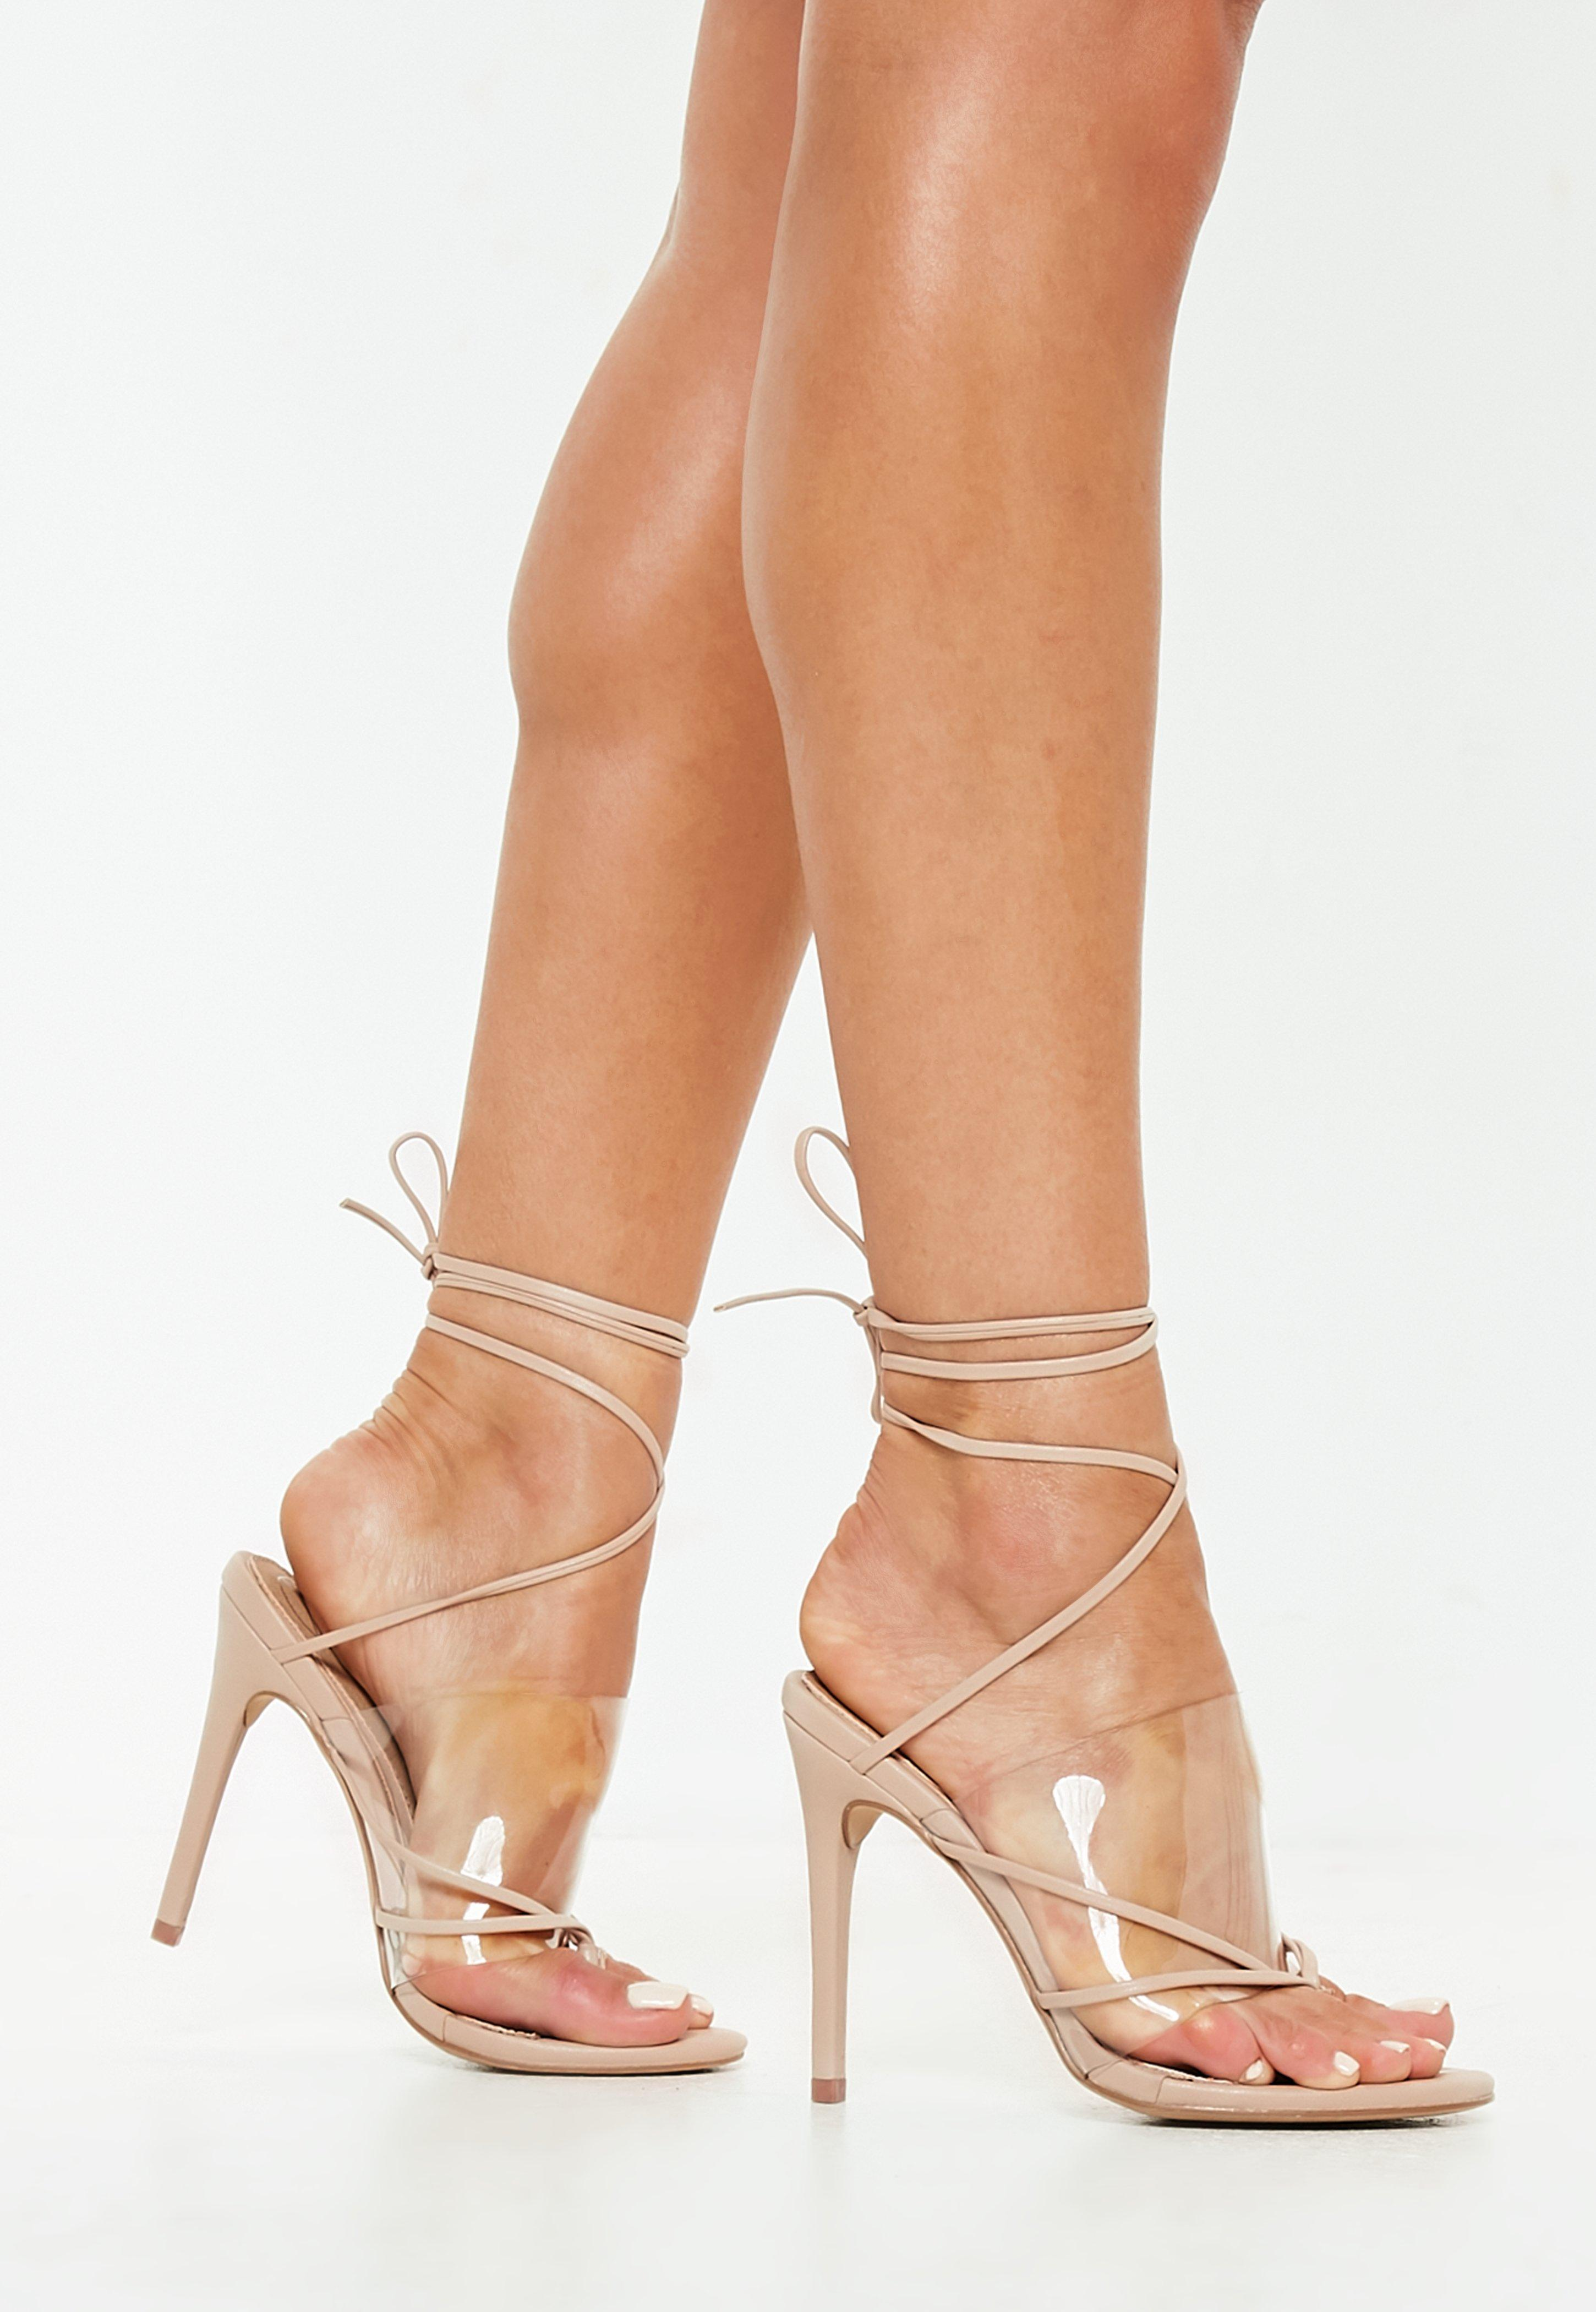 Cheap Shoes Sale Heels For Women Missguided Sandal Strape On Cream